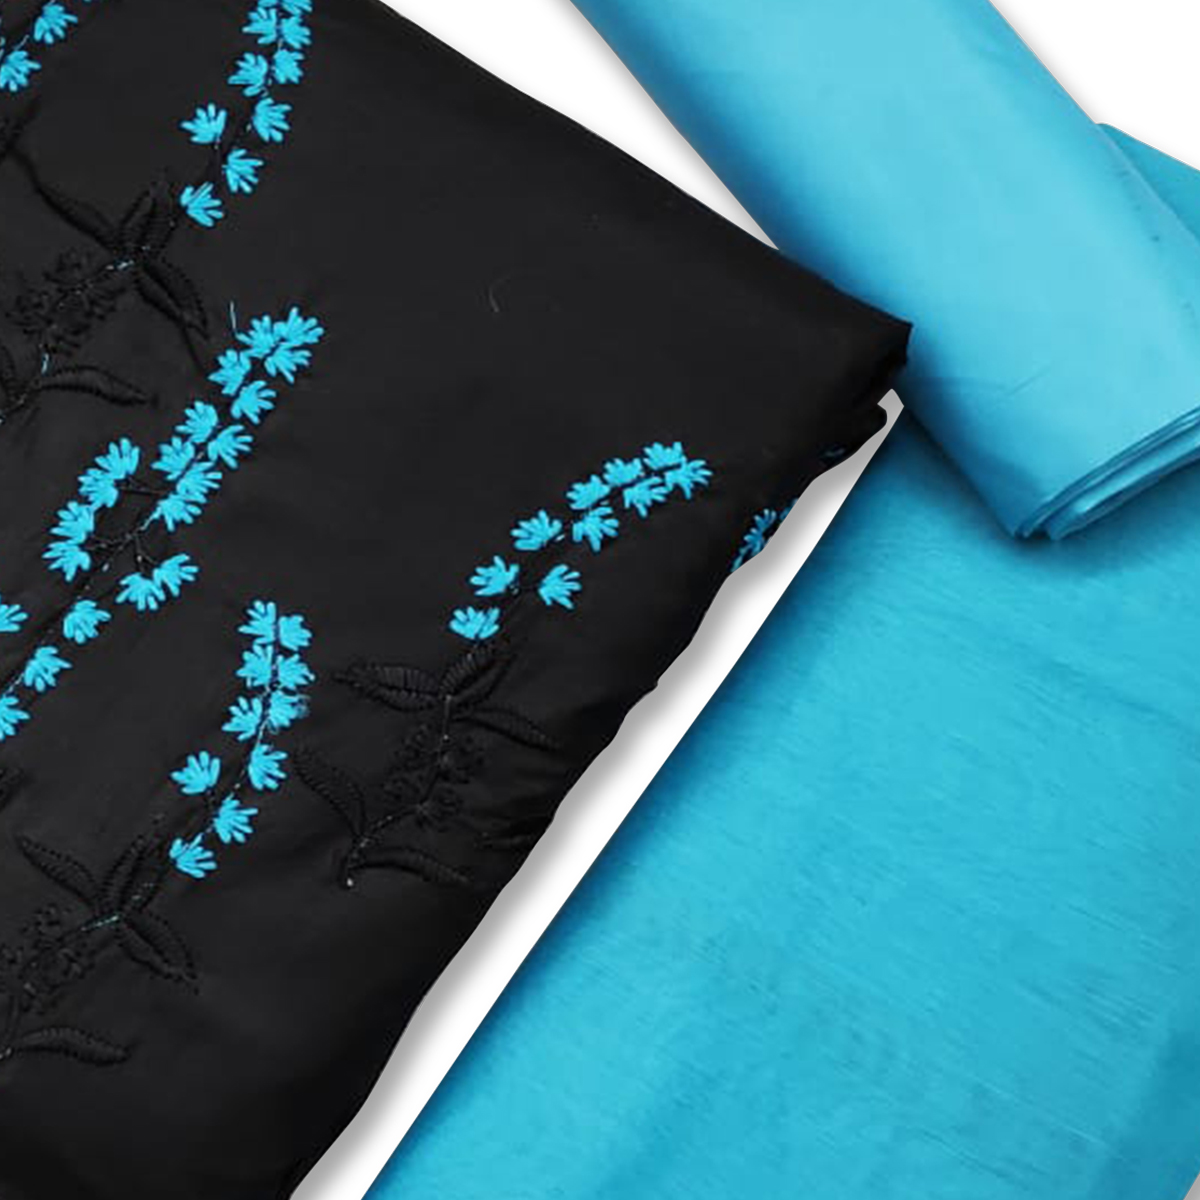 Marvellous Black-Blue Colored Casual Wear Embroidered Cotton Dress Material